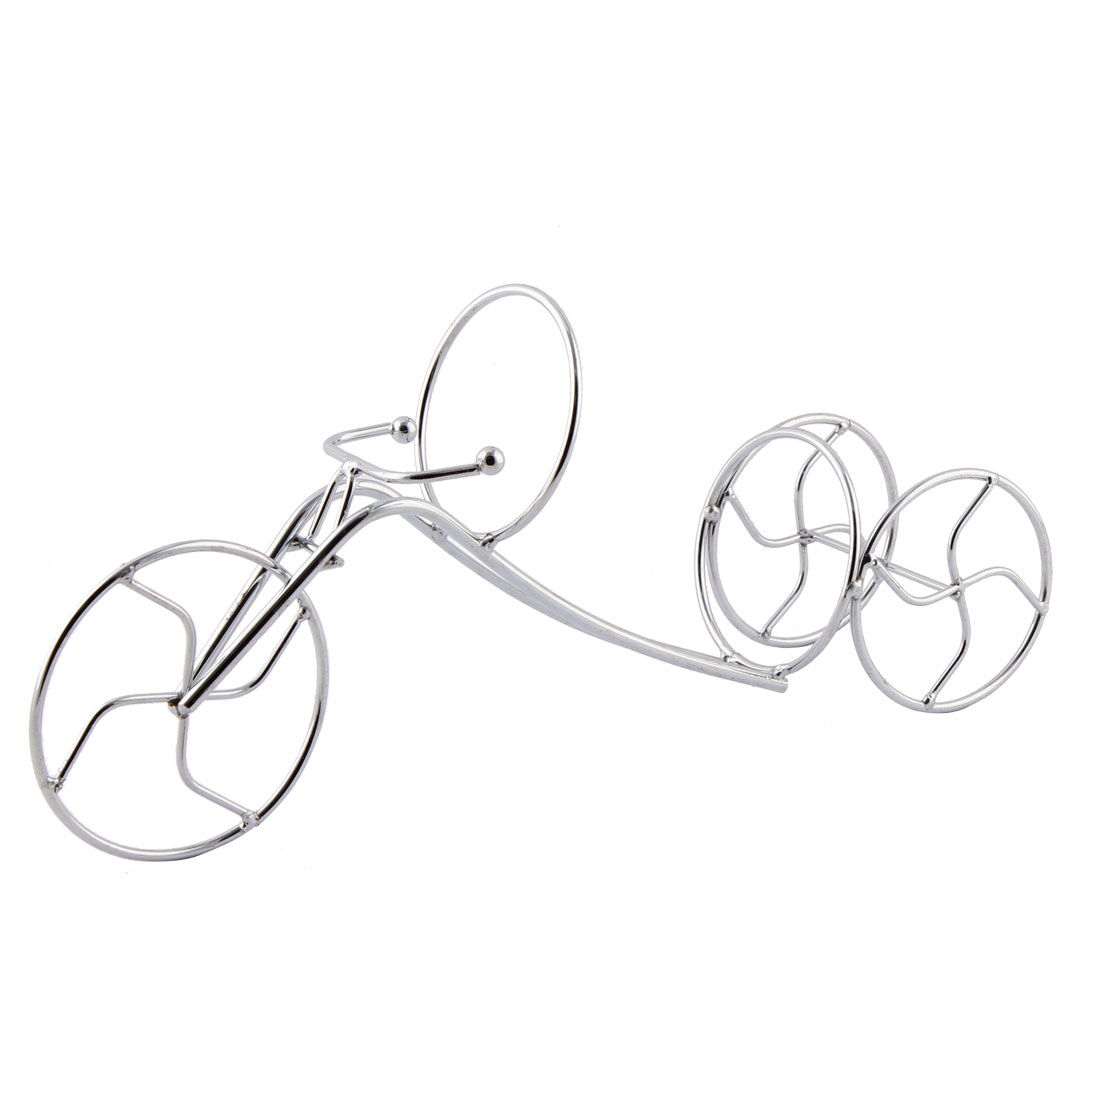 Home Bar Tricycle Design Wine Bottle Display Holder Rack Dining Tool Silver Tone